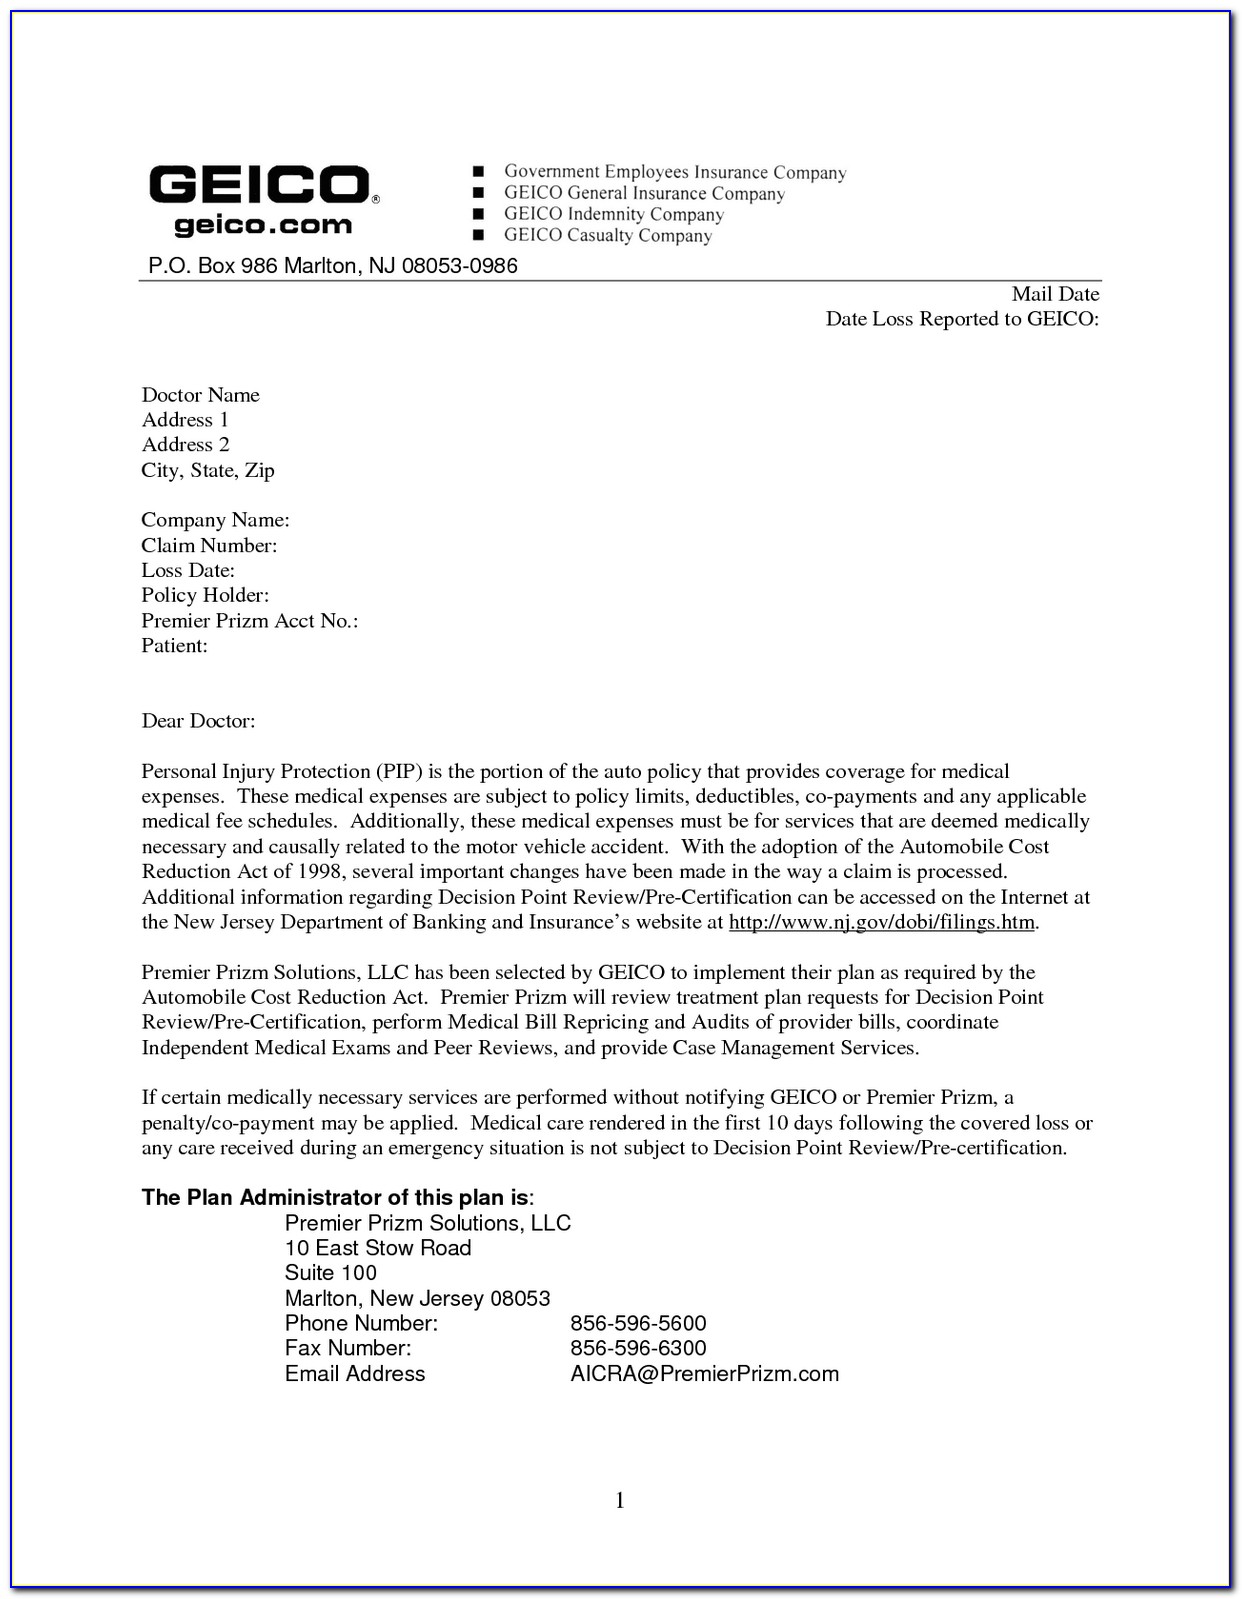 Auto Insurance Card Template Pdf With Geico House Insurance